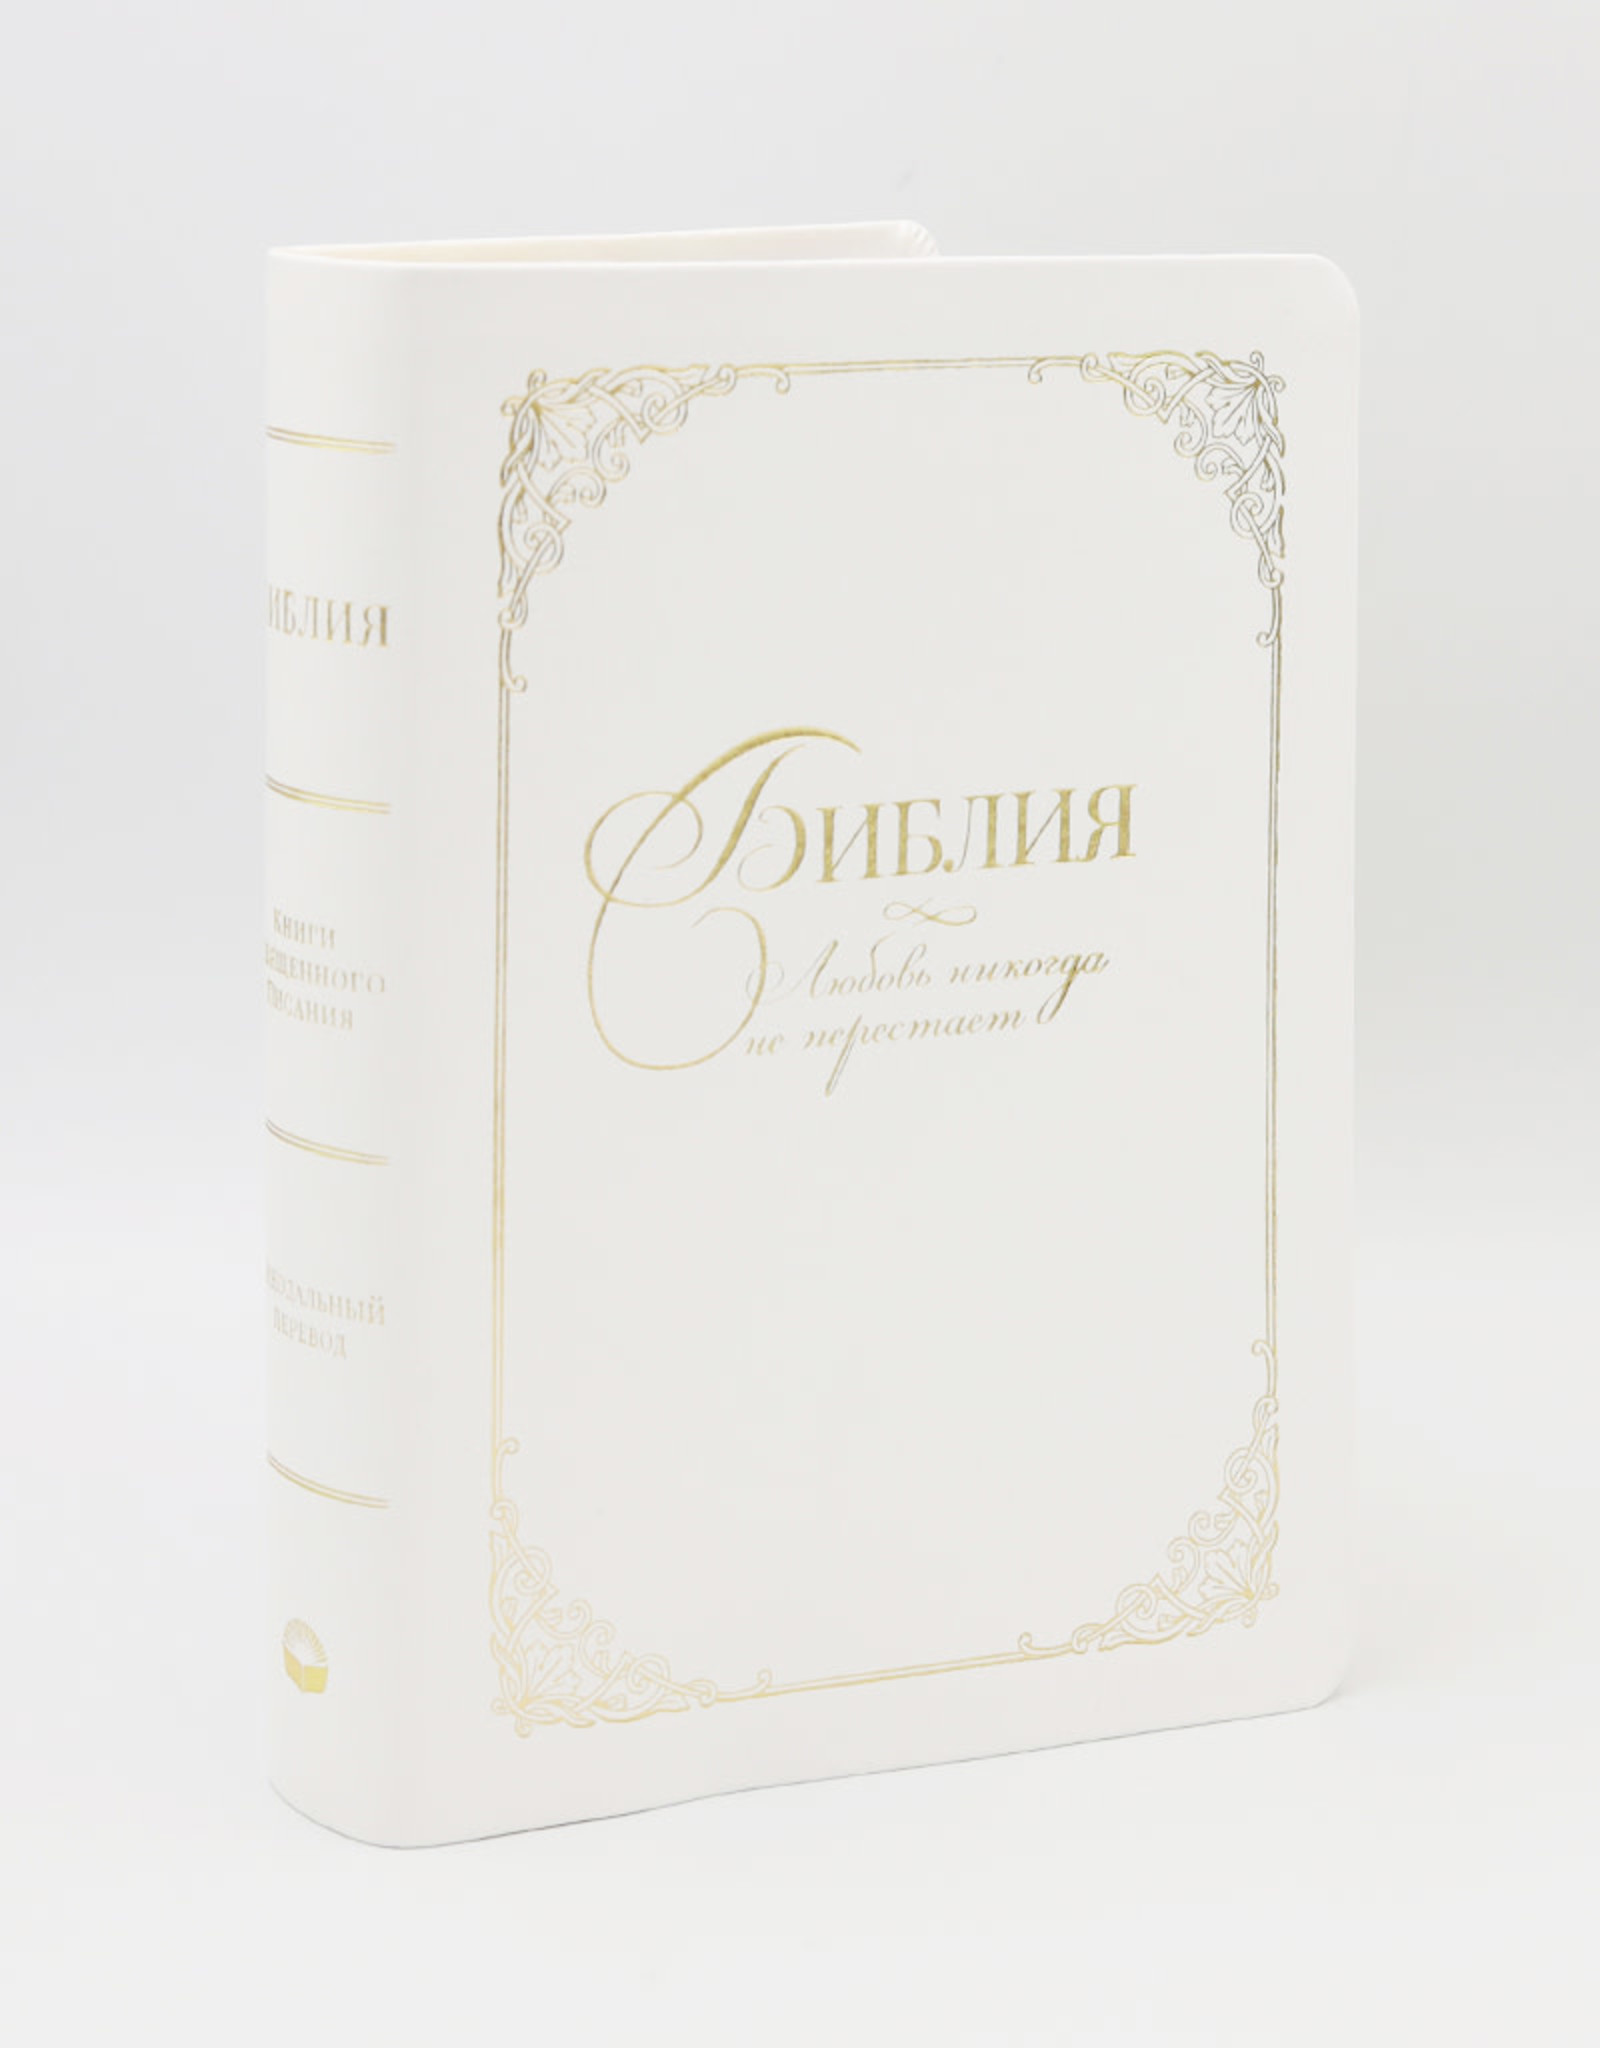 Библия, Каноническая (SYNO), Leather with Index, Wedding Edition, Medium